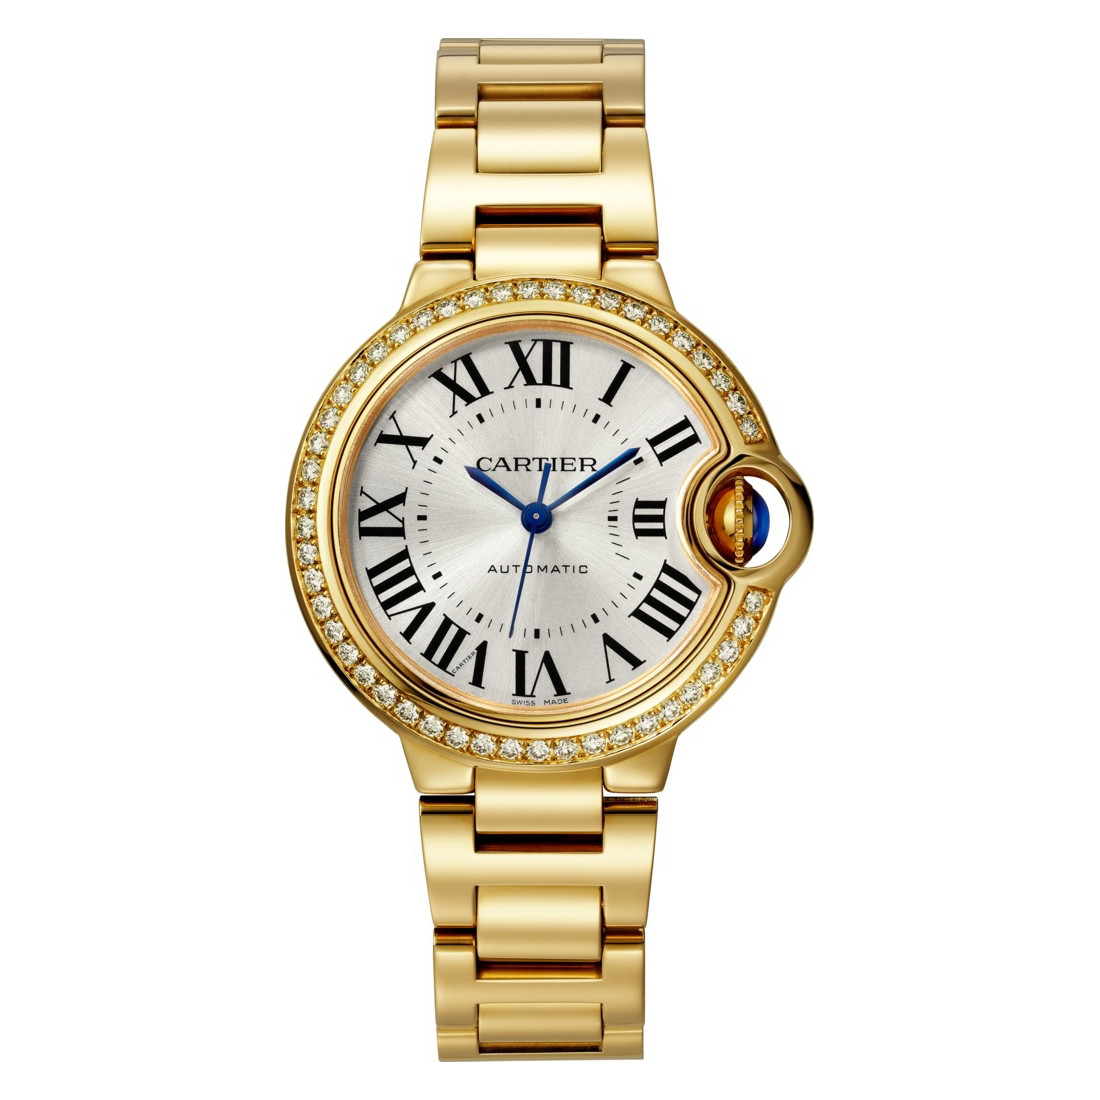 Ballon Bleu 33mm Yellow Gold & Diamond (WJBB0042)